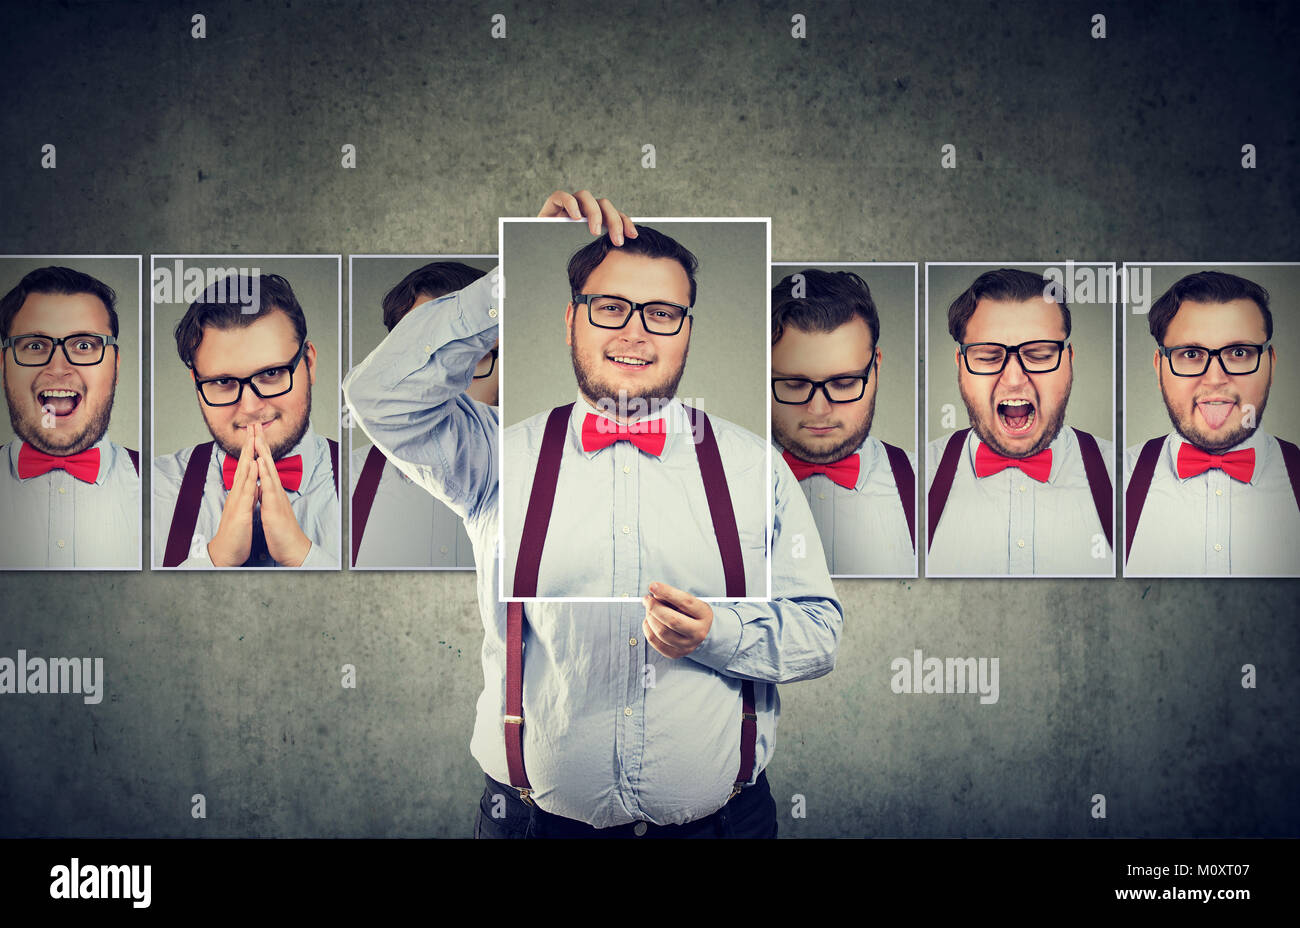 Chubby man with split personality choosing mood and hiding real feelings. - Stock Image